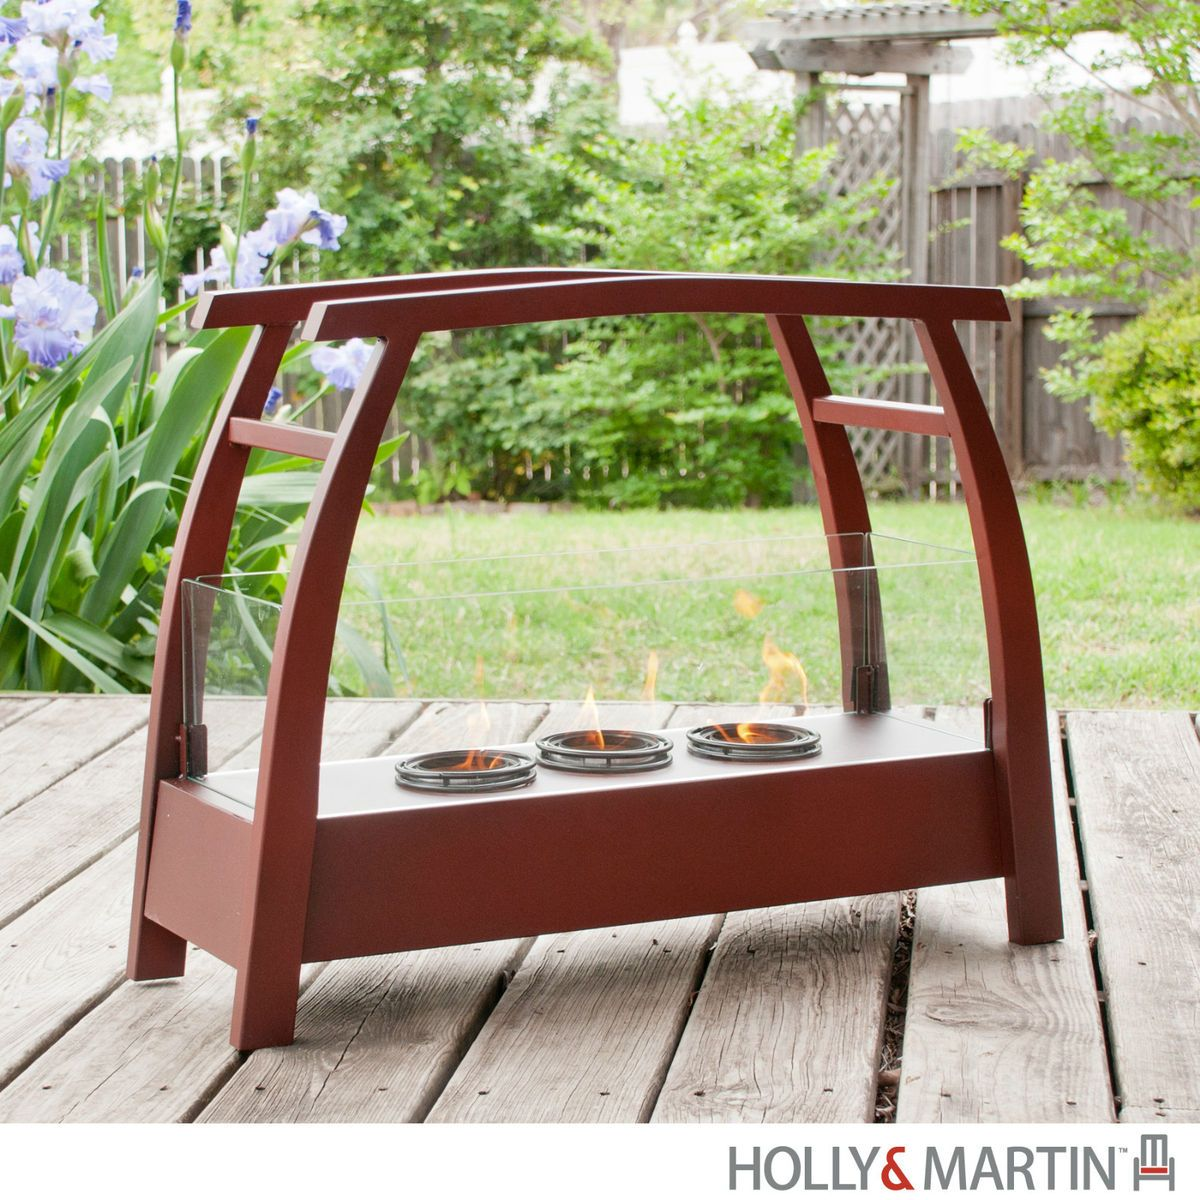 Indoor Outdoor Gel Fireplace Heater Portable Metal Glass HOLLY MARTIN